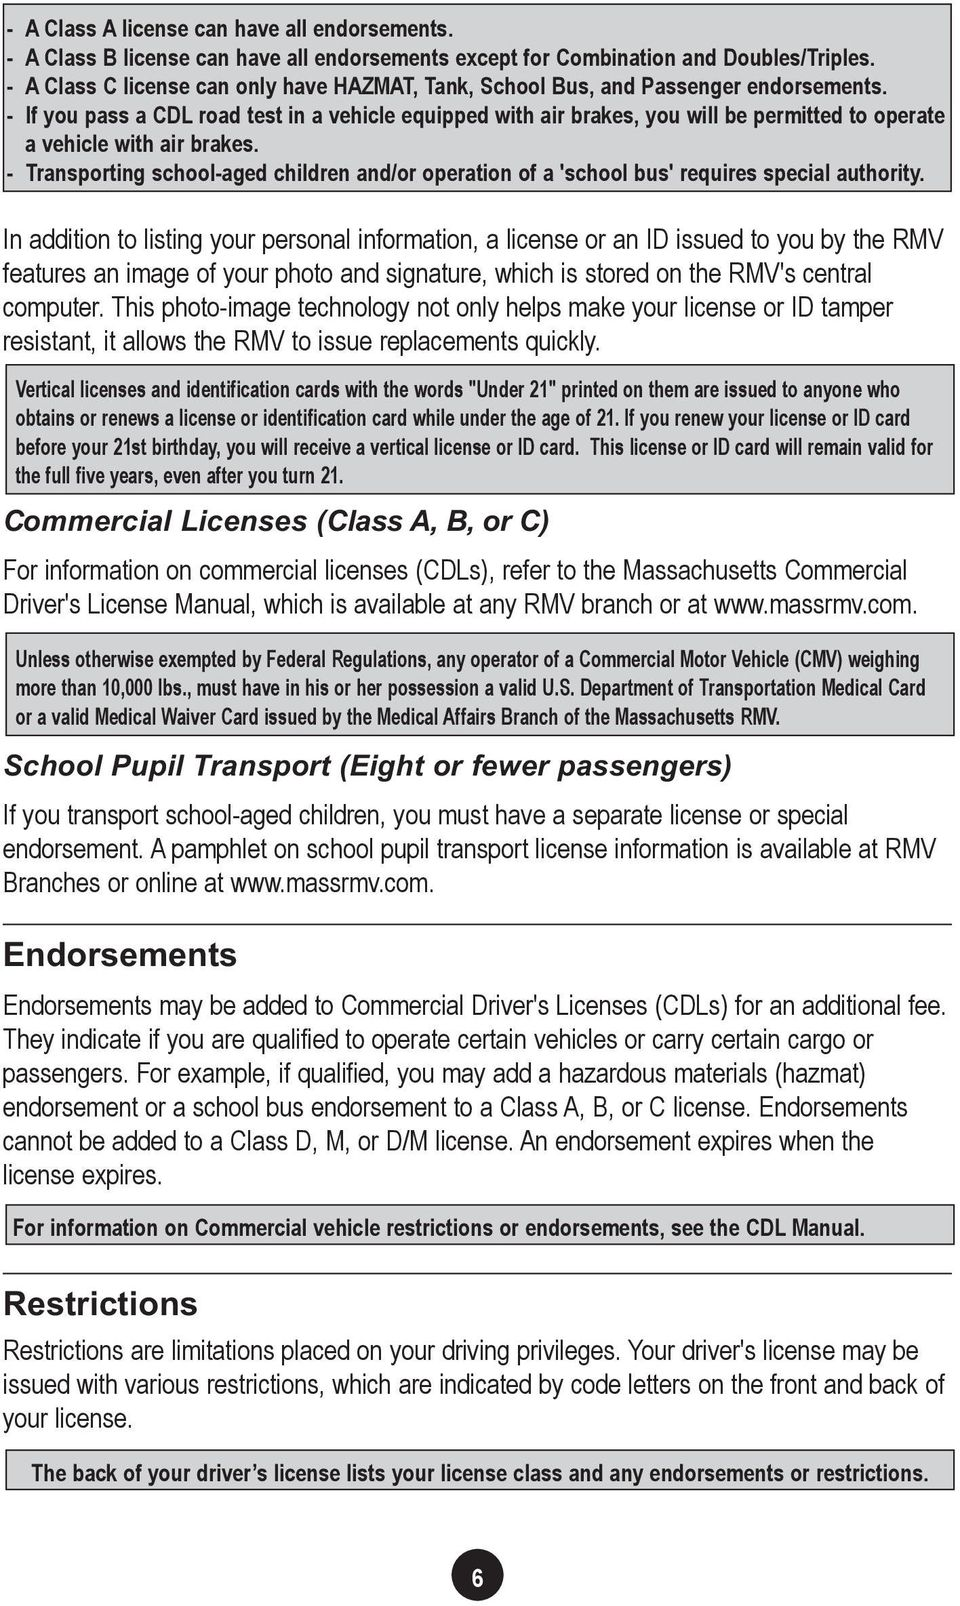 CHAPTER 1  Obtaining Your License - PDF